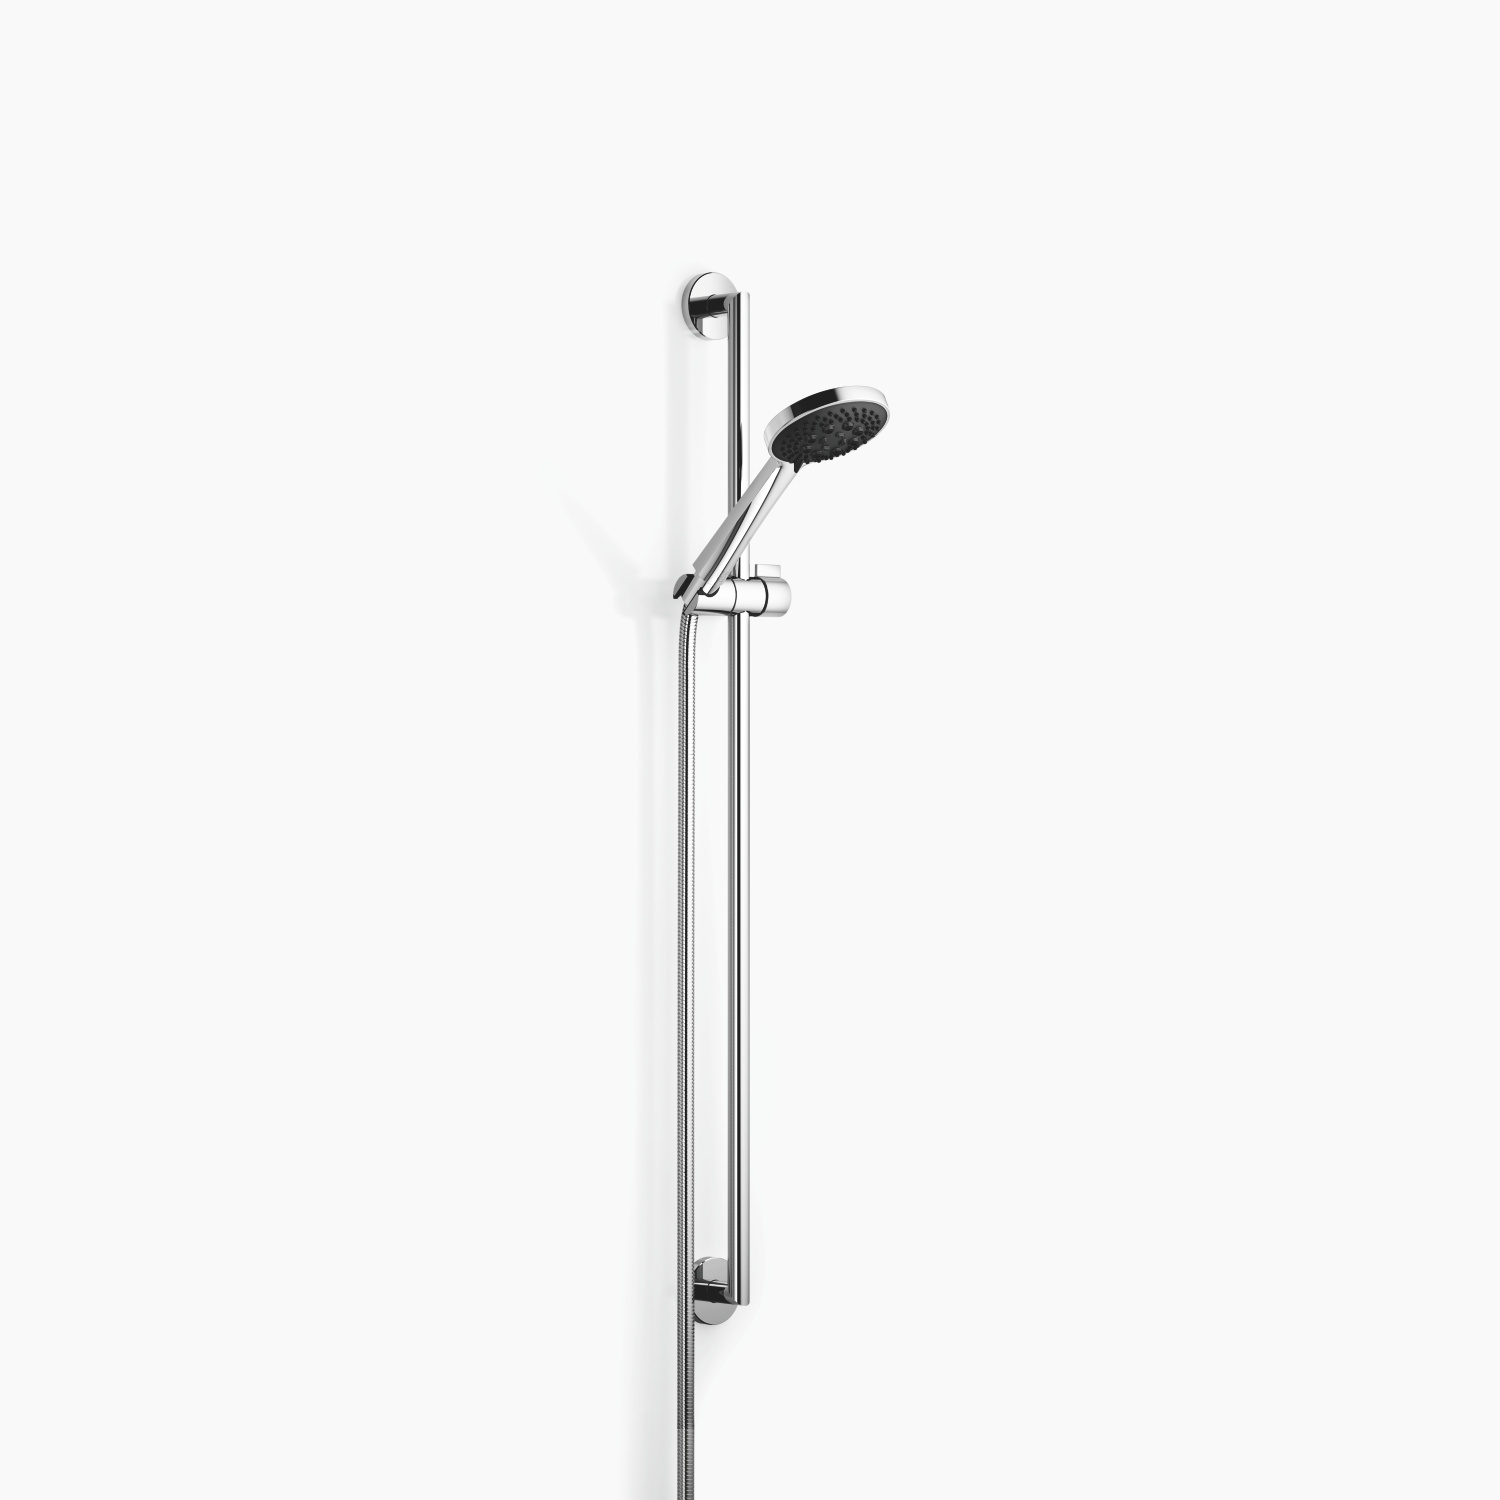 Shower set - platinum matt - 26 403 625-06